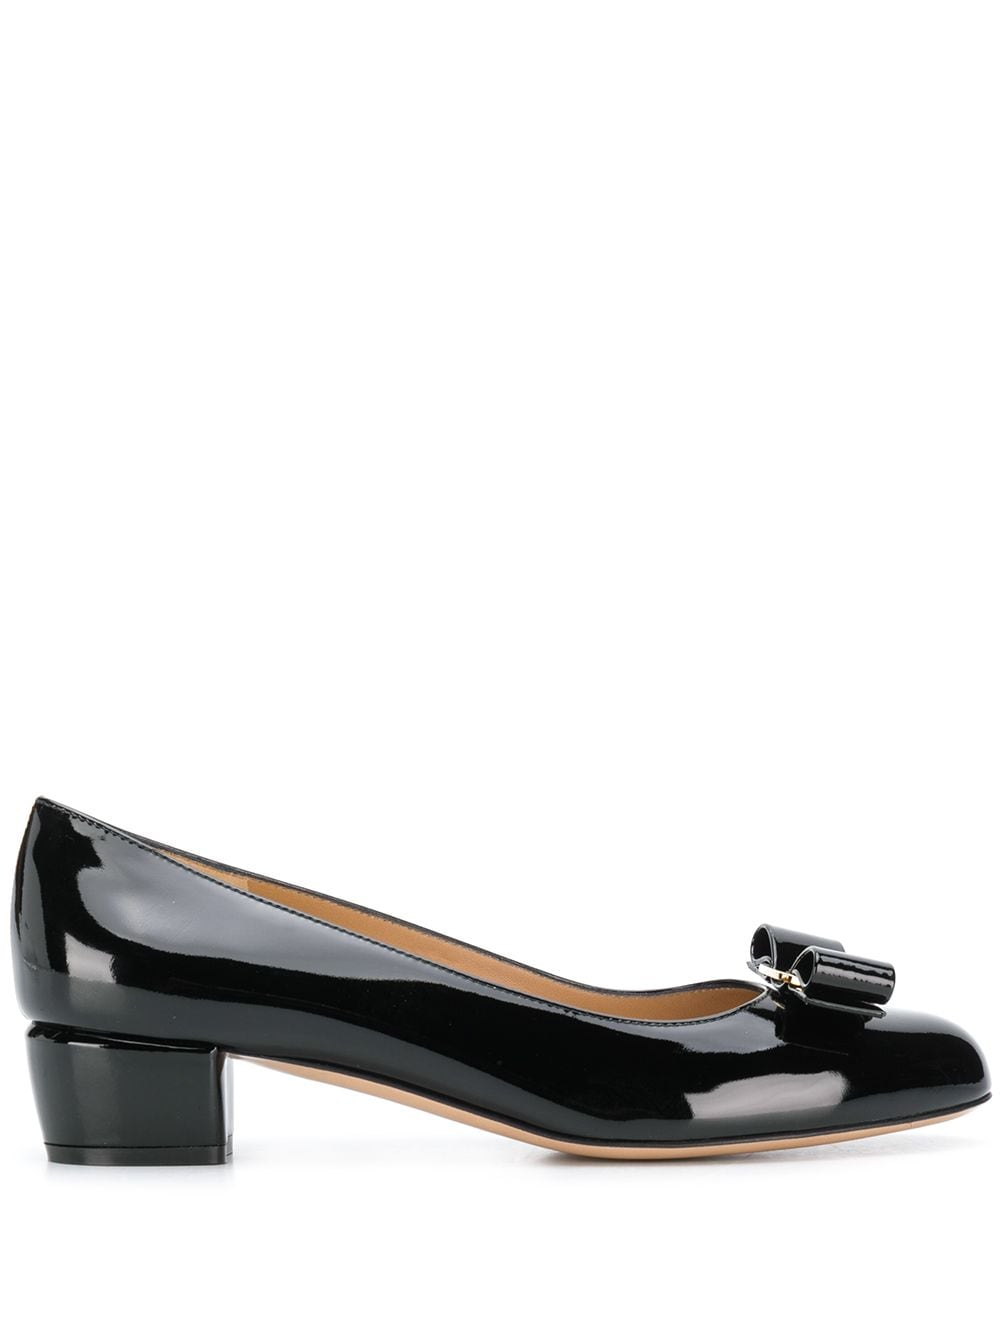 Vara Patent Leather Pumps